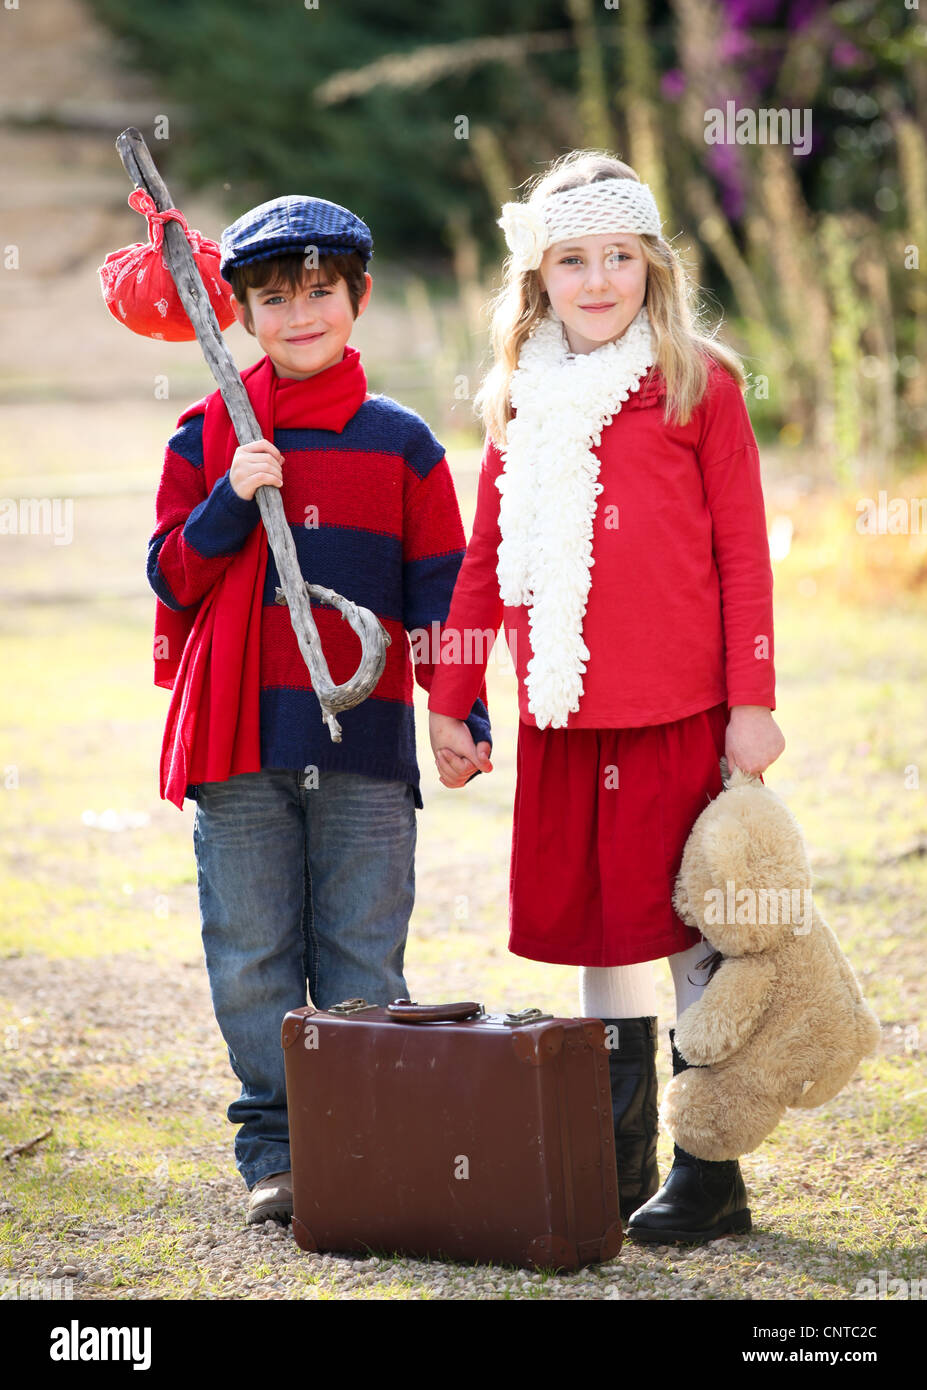 concept for children going on vacation holiday or summer camp - Stock Image